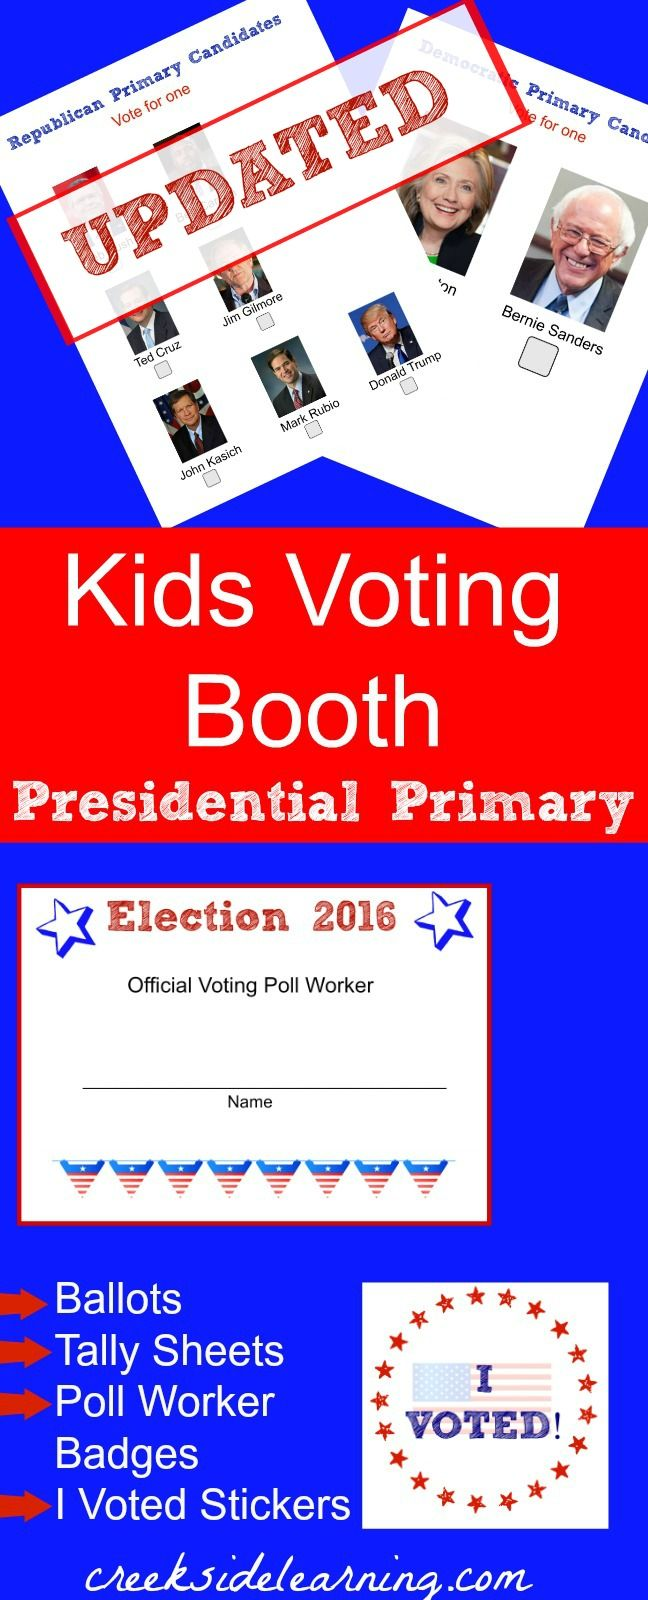 kids voting booth presidential primary. Kids election activities, voting ballots. Kids vote for presidential candidates.